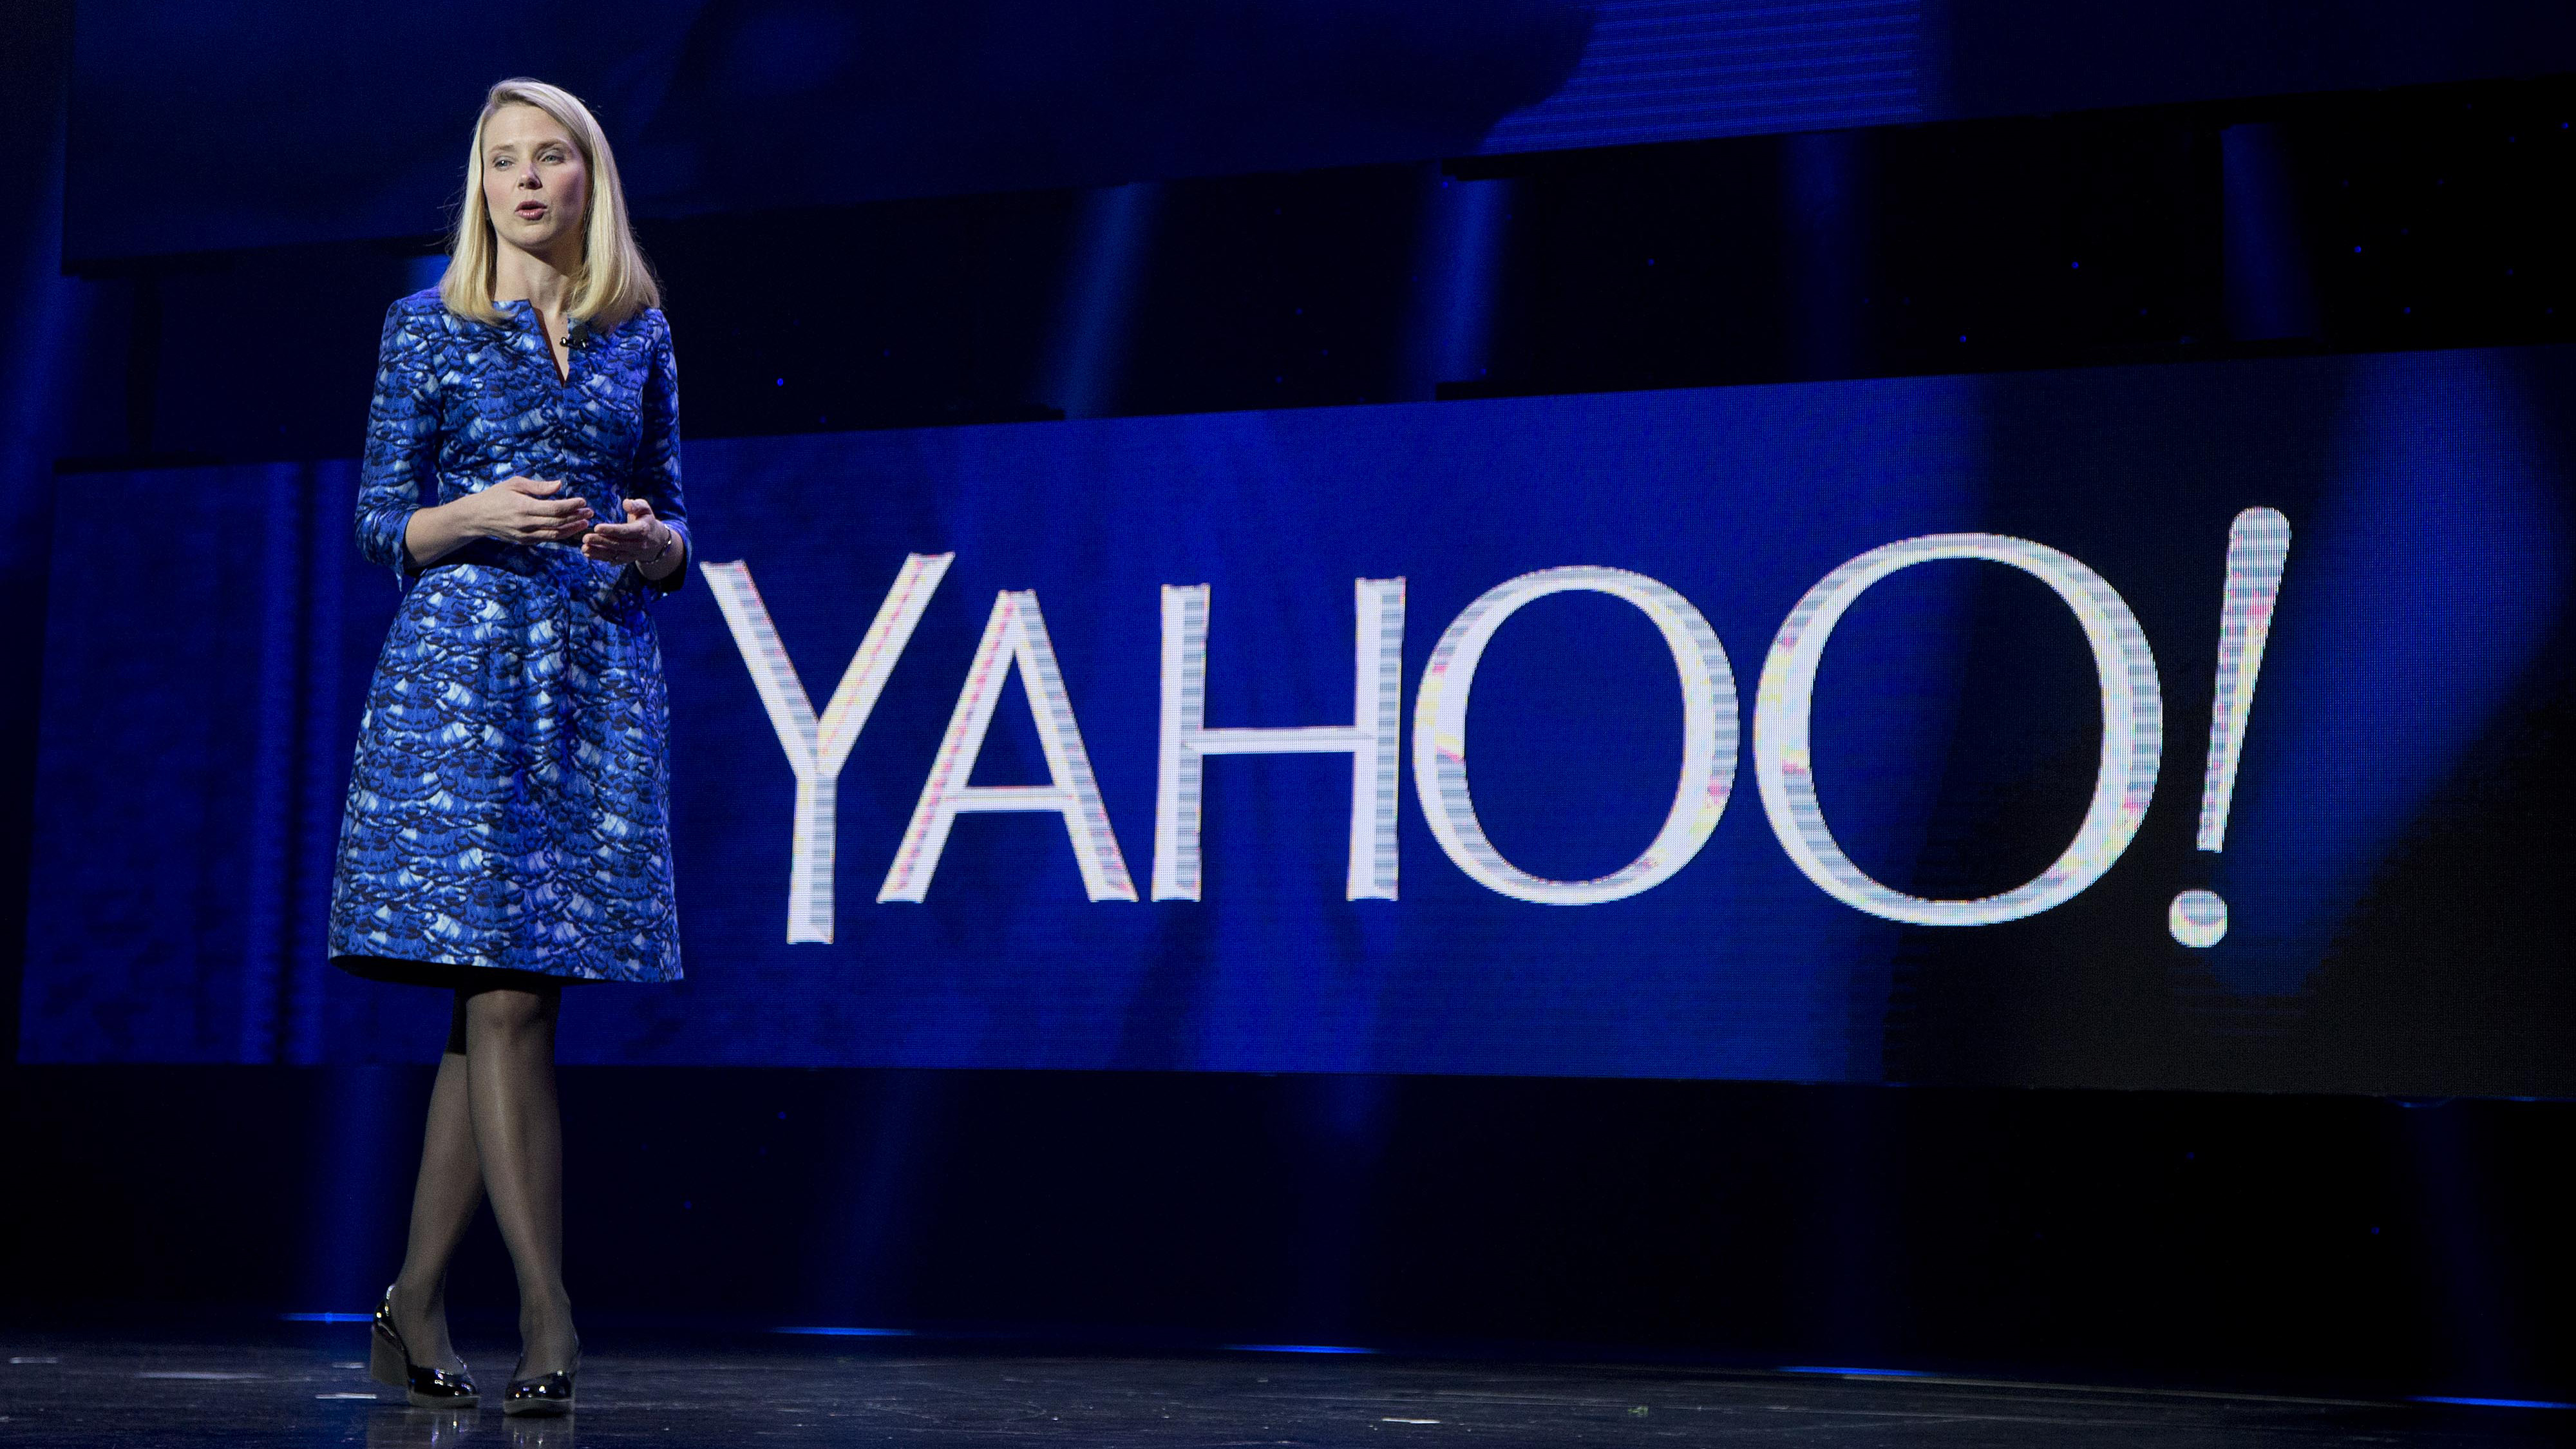 FILE - In this Jan. 7, 2014 file photo, Yahoo President and CEO Marissa Mayer speaks during the International Consumer Electronics Show in Las Vegas. Yahoo Inc. on Tuesday, April 21, 2015, reported first-quarter net income of $21.2 million. On a per-share basis, the Sunnyvale, California-based company said it had net income of 2 cents.(AP Photo/Julie Jacobson, File)